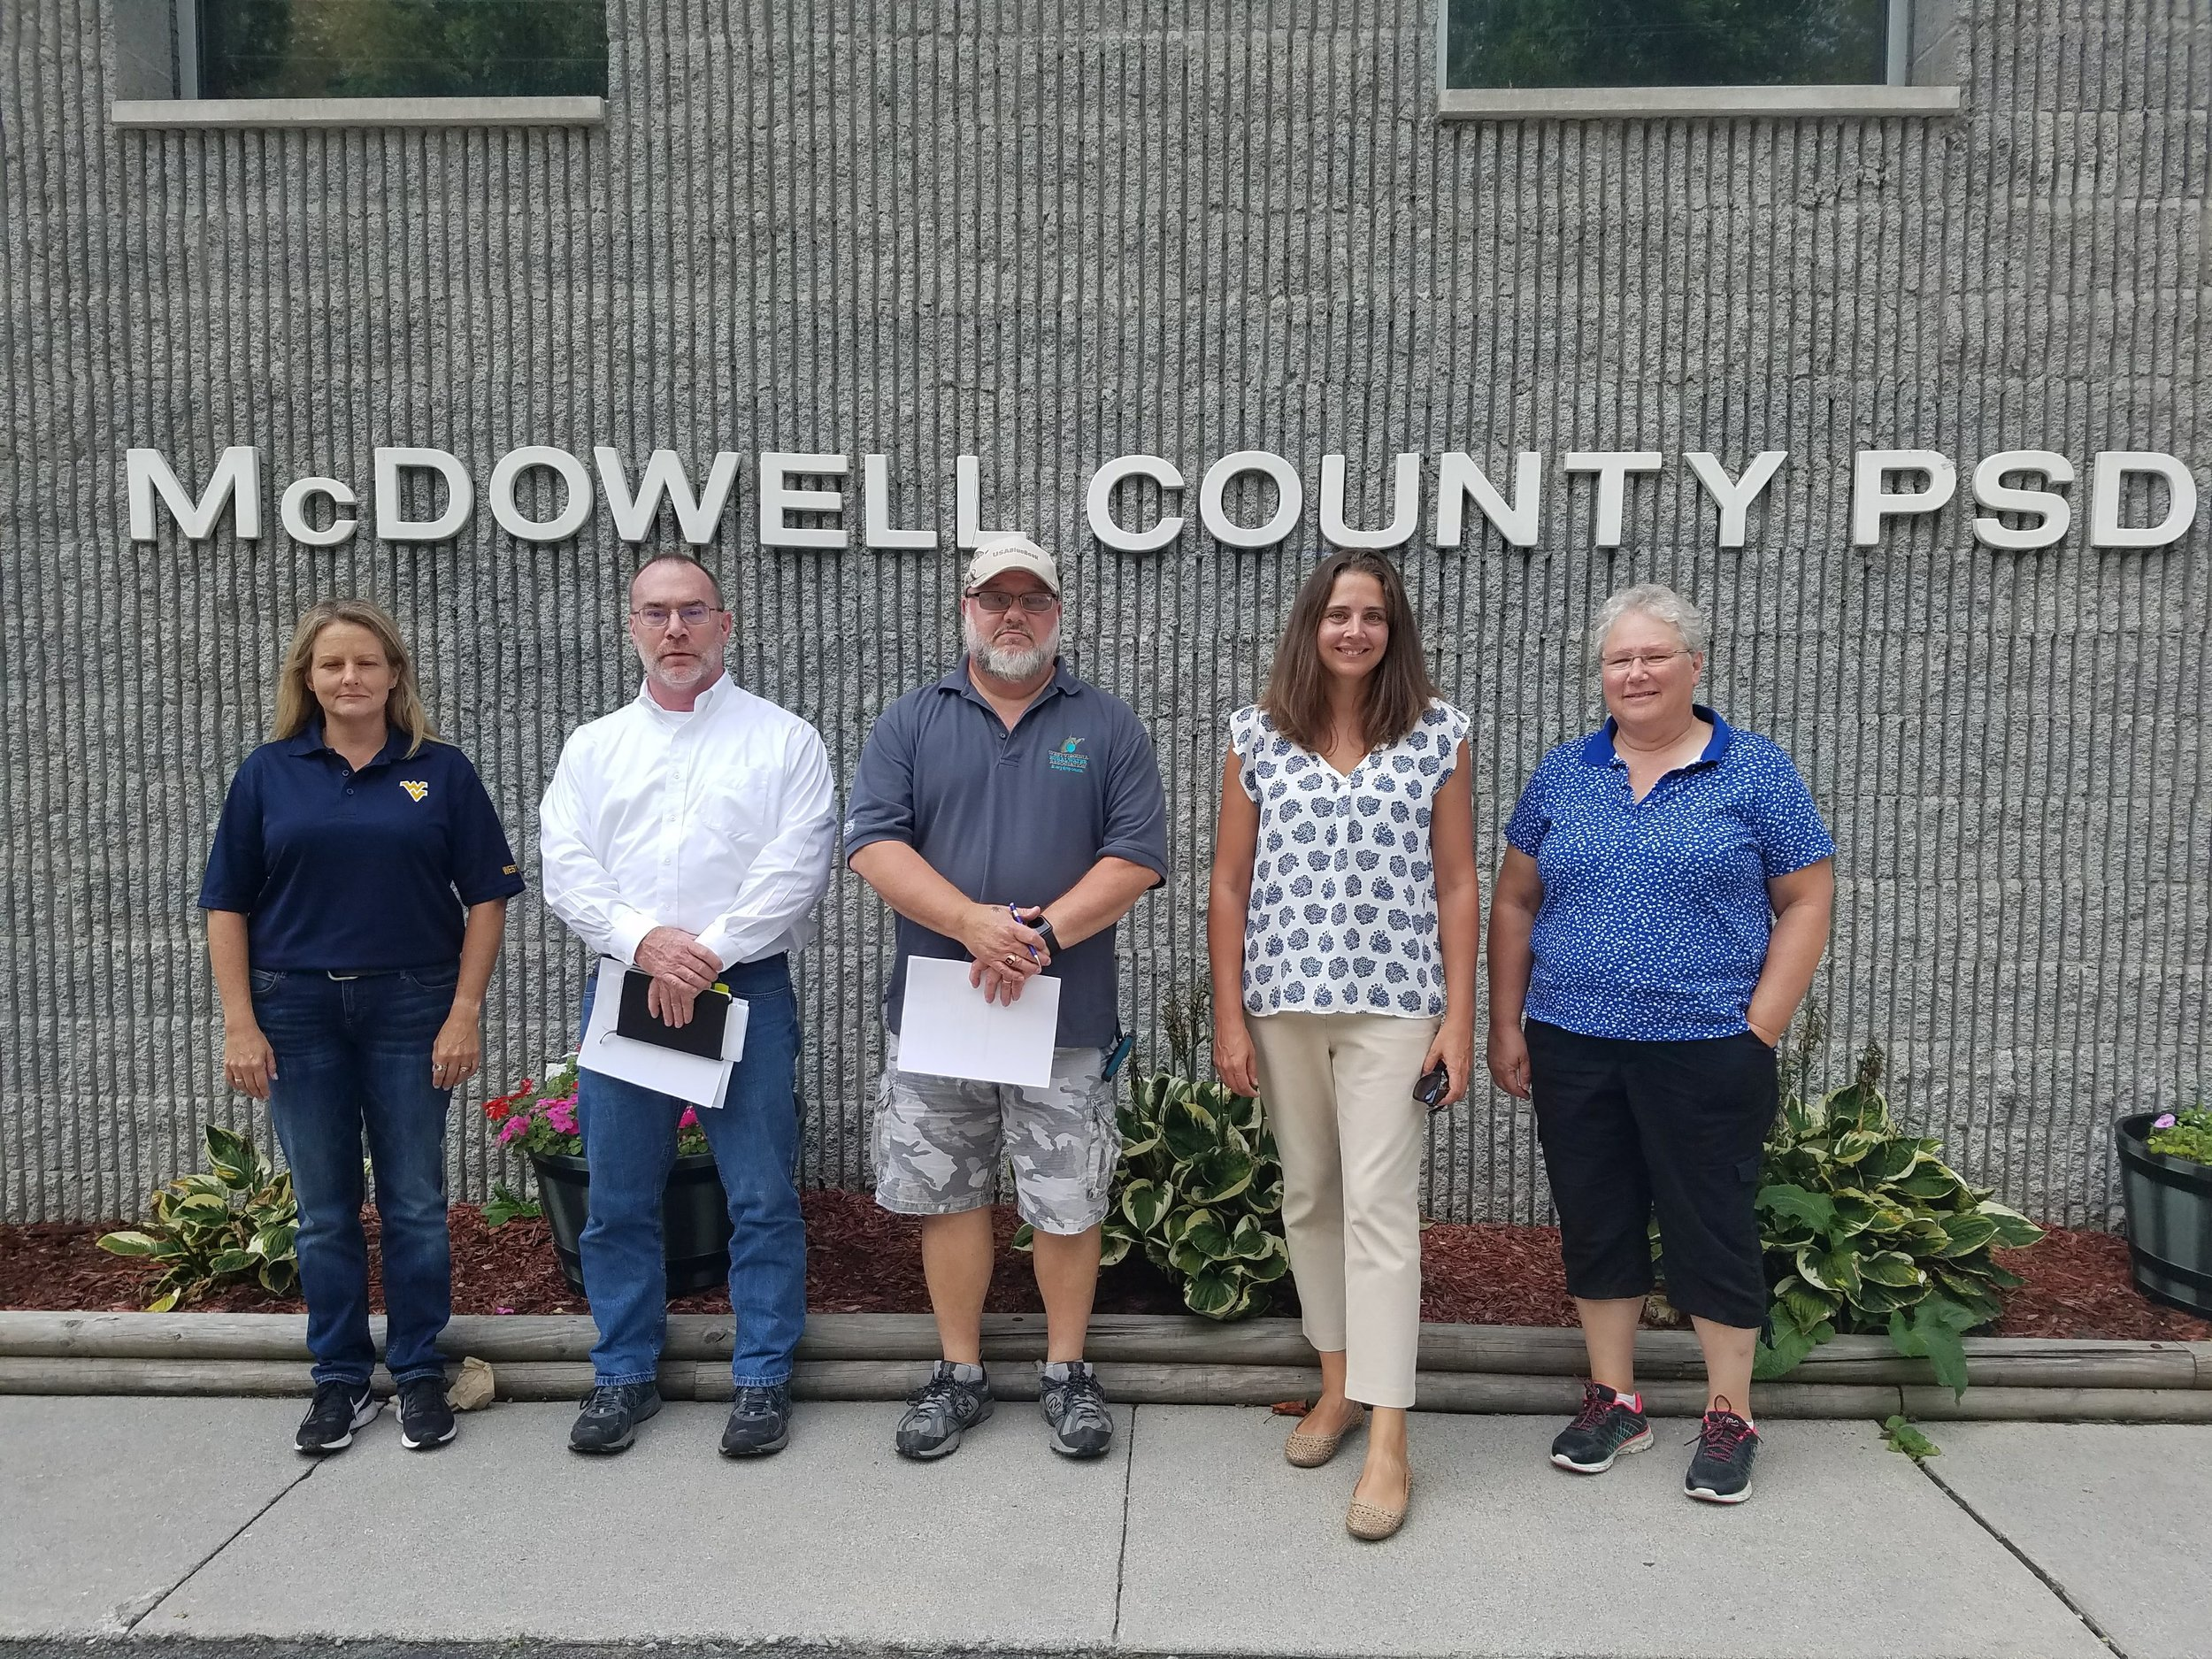 Caption: Members of the Alternative Wastewater Coalition visit public service district in southern WV.